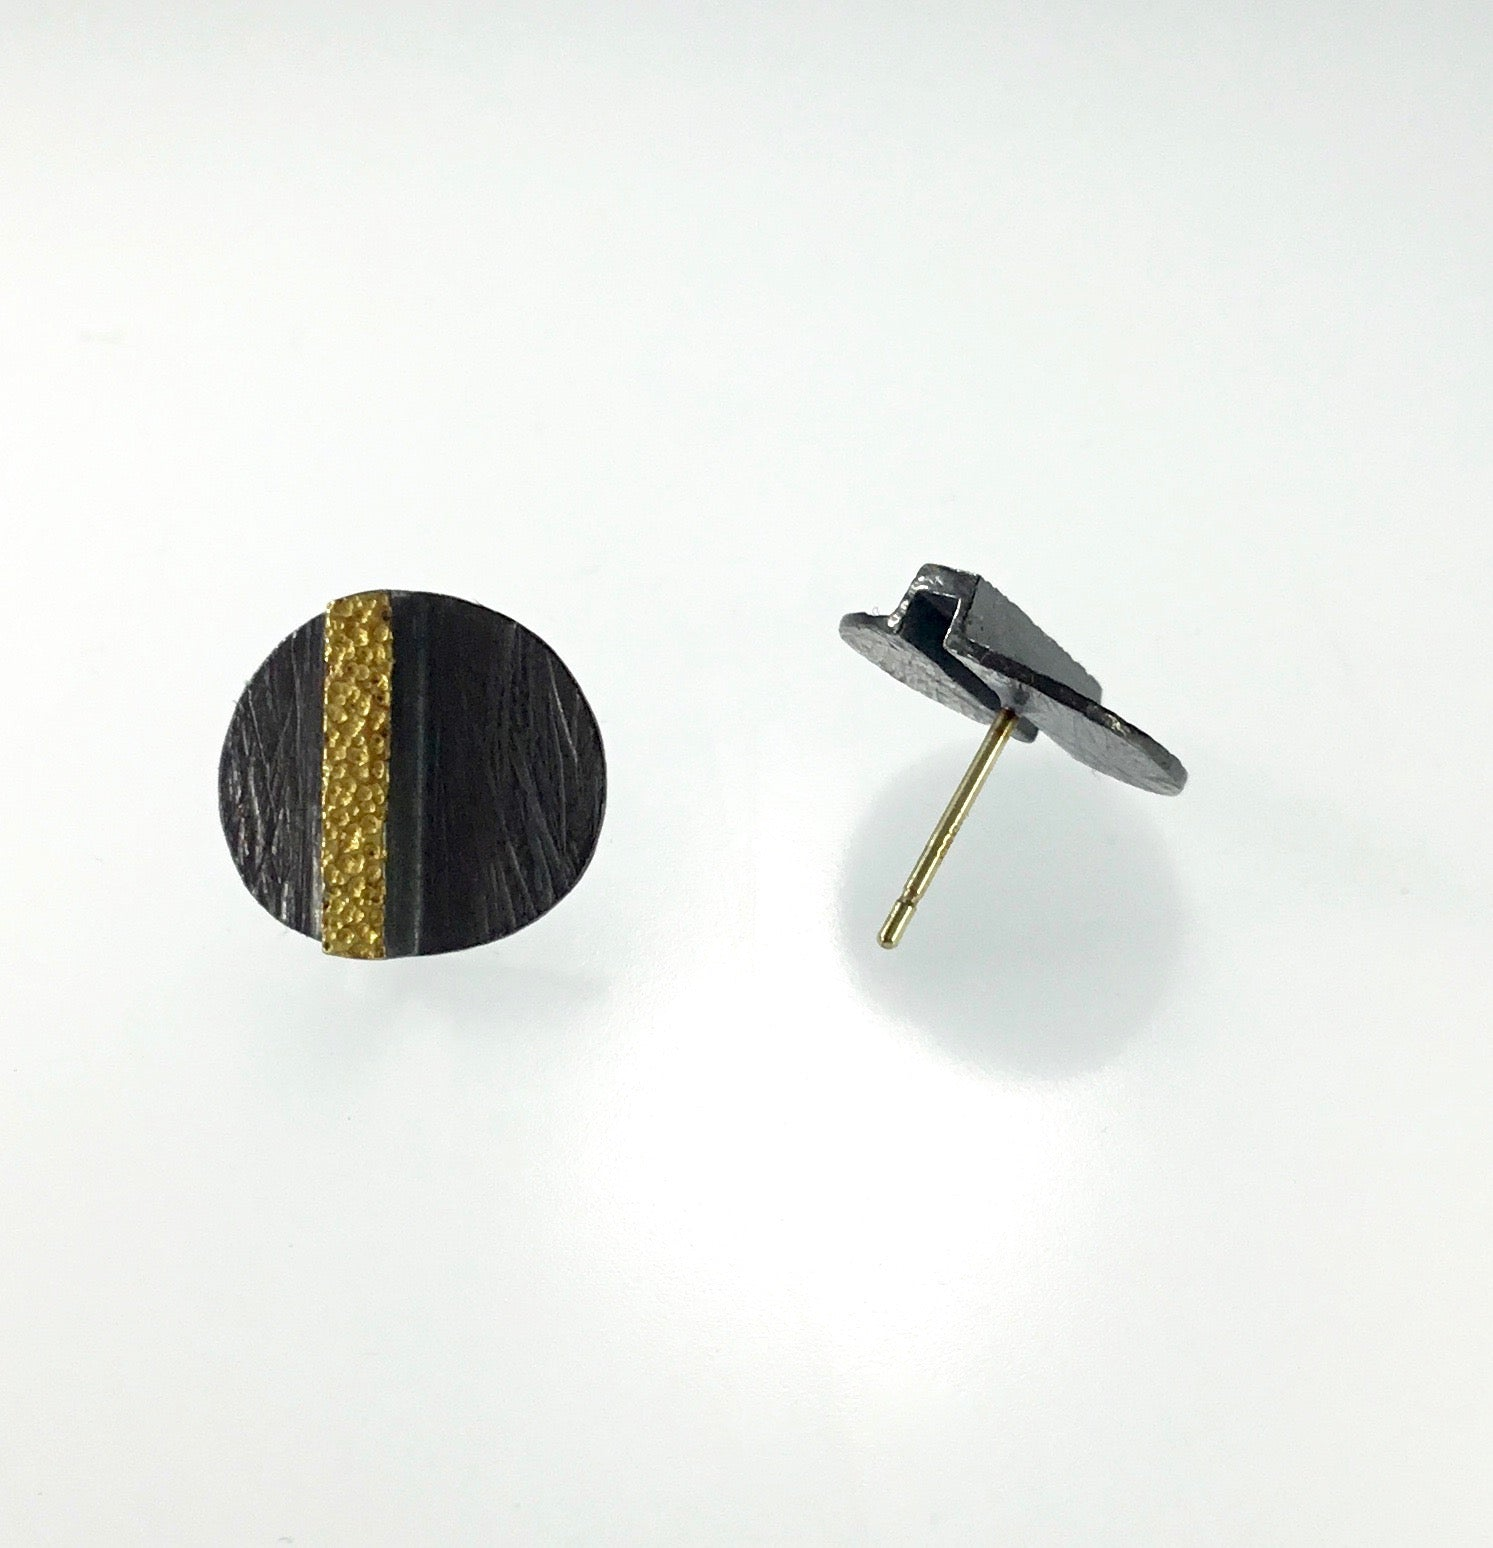 Heather Guidero Carved Discs with 22K Earrings